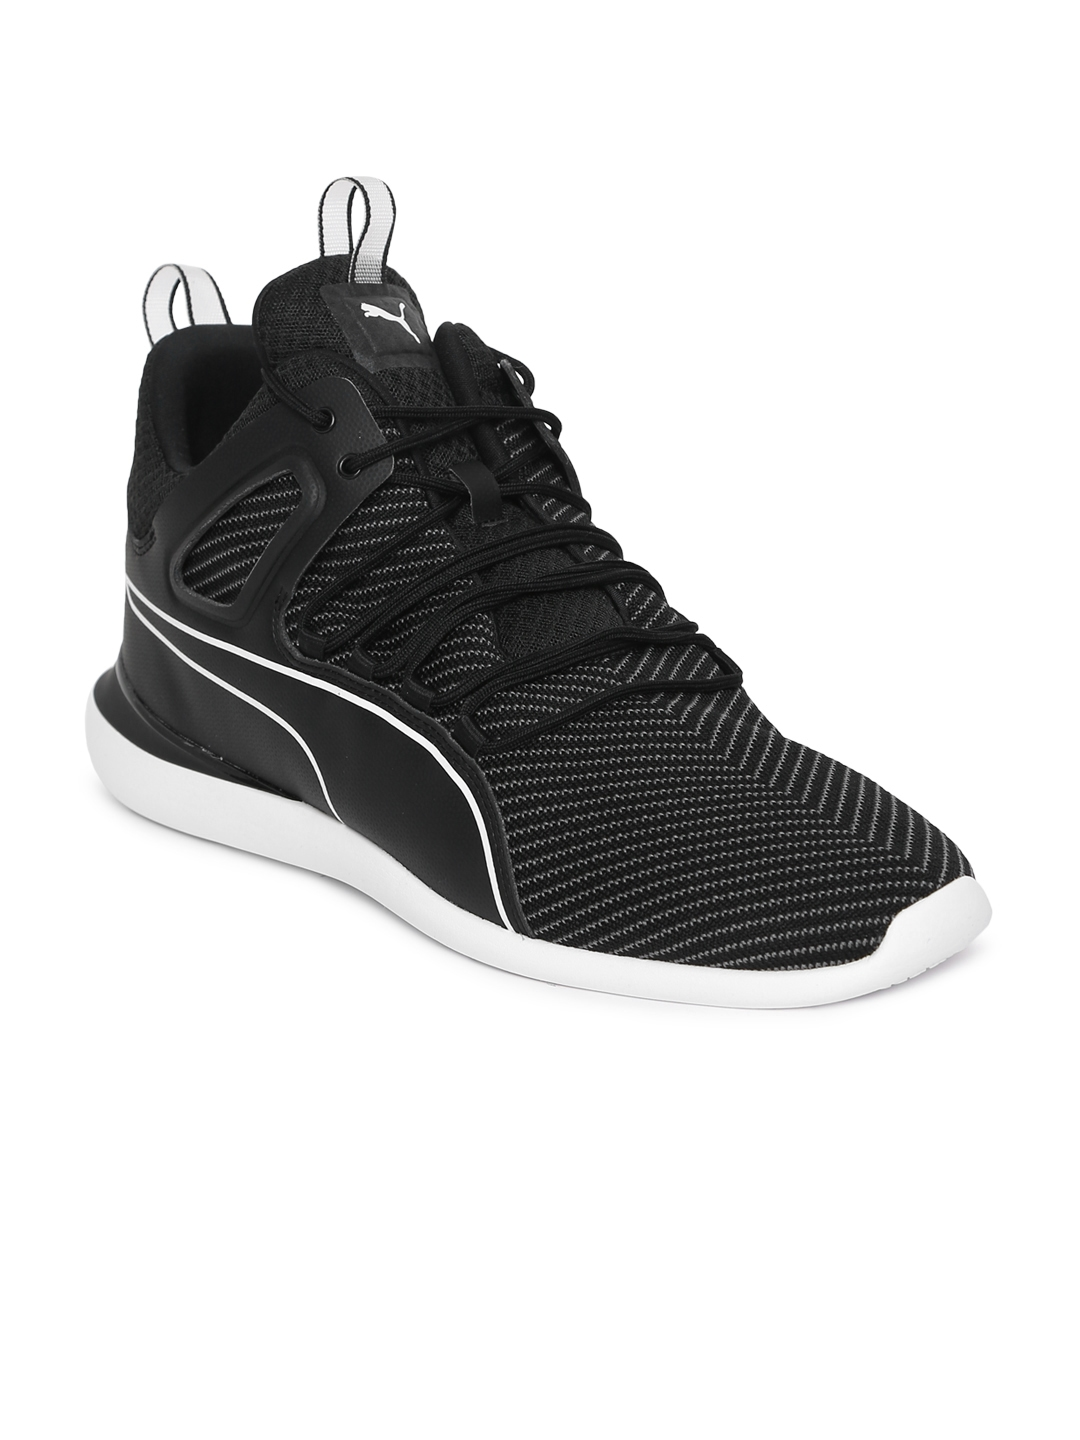 Buy Puma Men Black Scuderia Ferrari Evo Cat Sneakers - Casual Shoes ... 43392eaf7